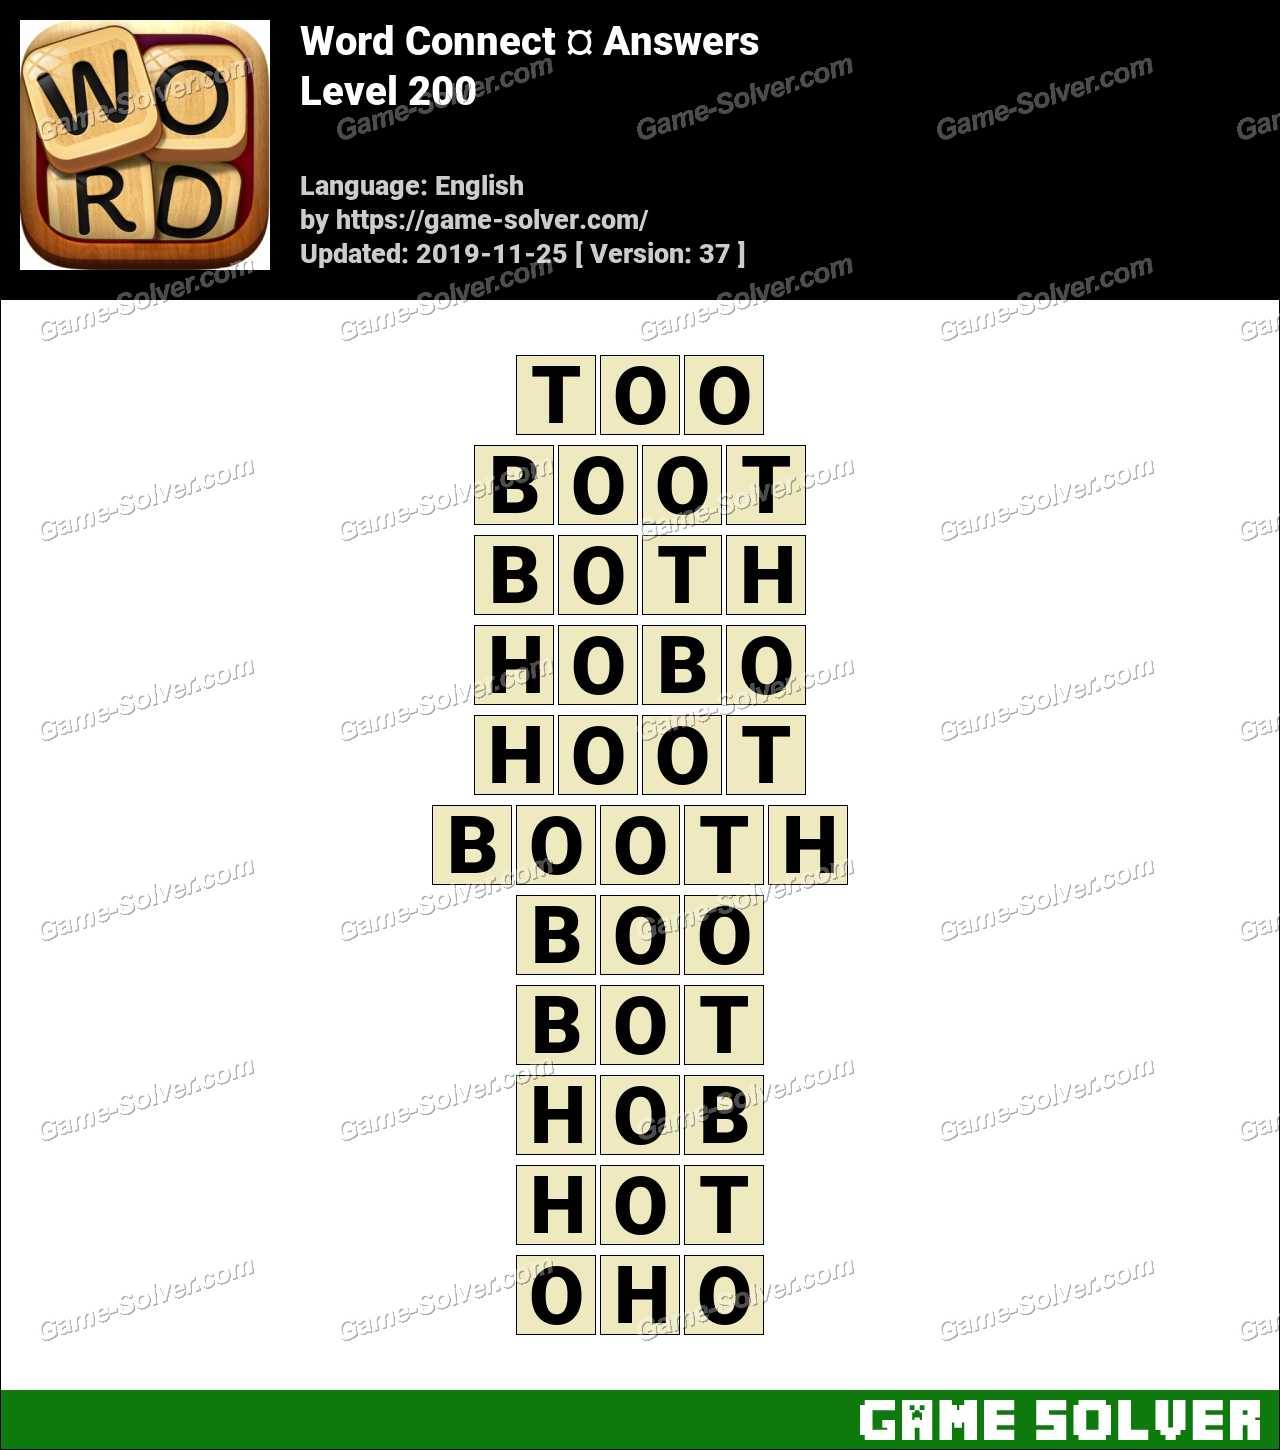 Word Connect Level 200 Answers